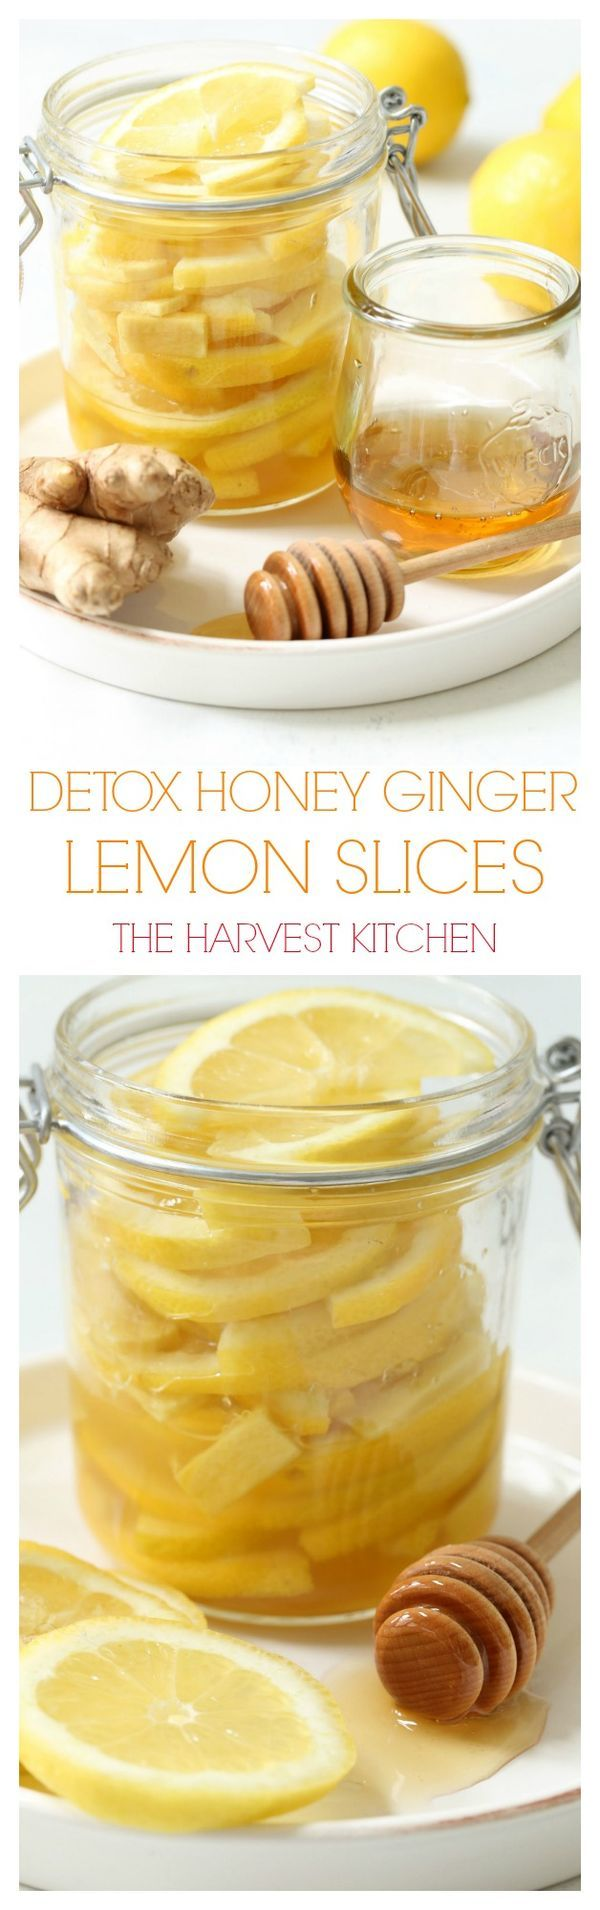 Keep a jar of these Detox Honey Ginger Lemon Slices in the fridge at home or at work for a fun way to help you stay hydrated during the day. @theharvestkitchen.com